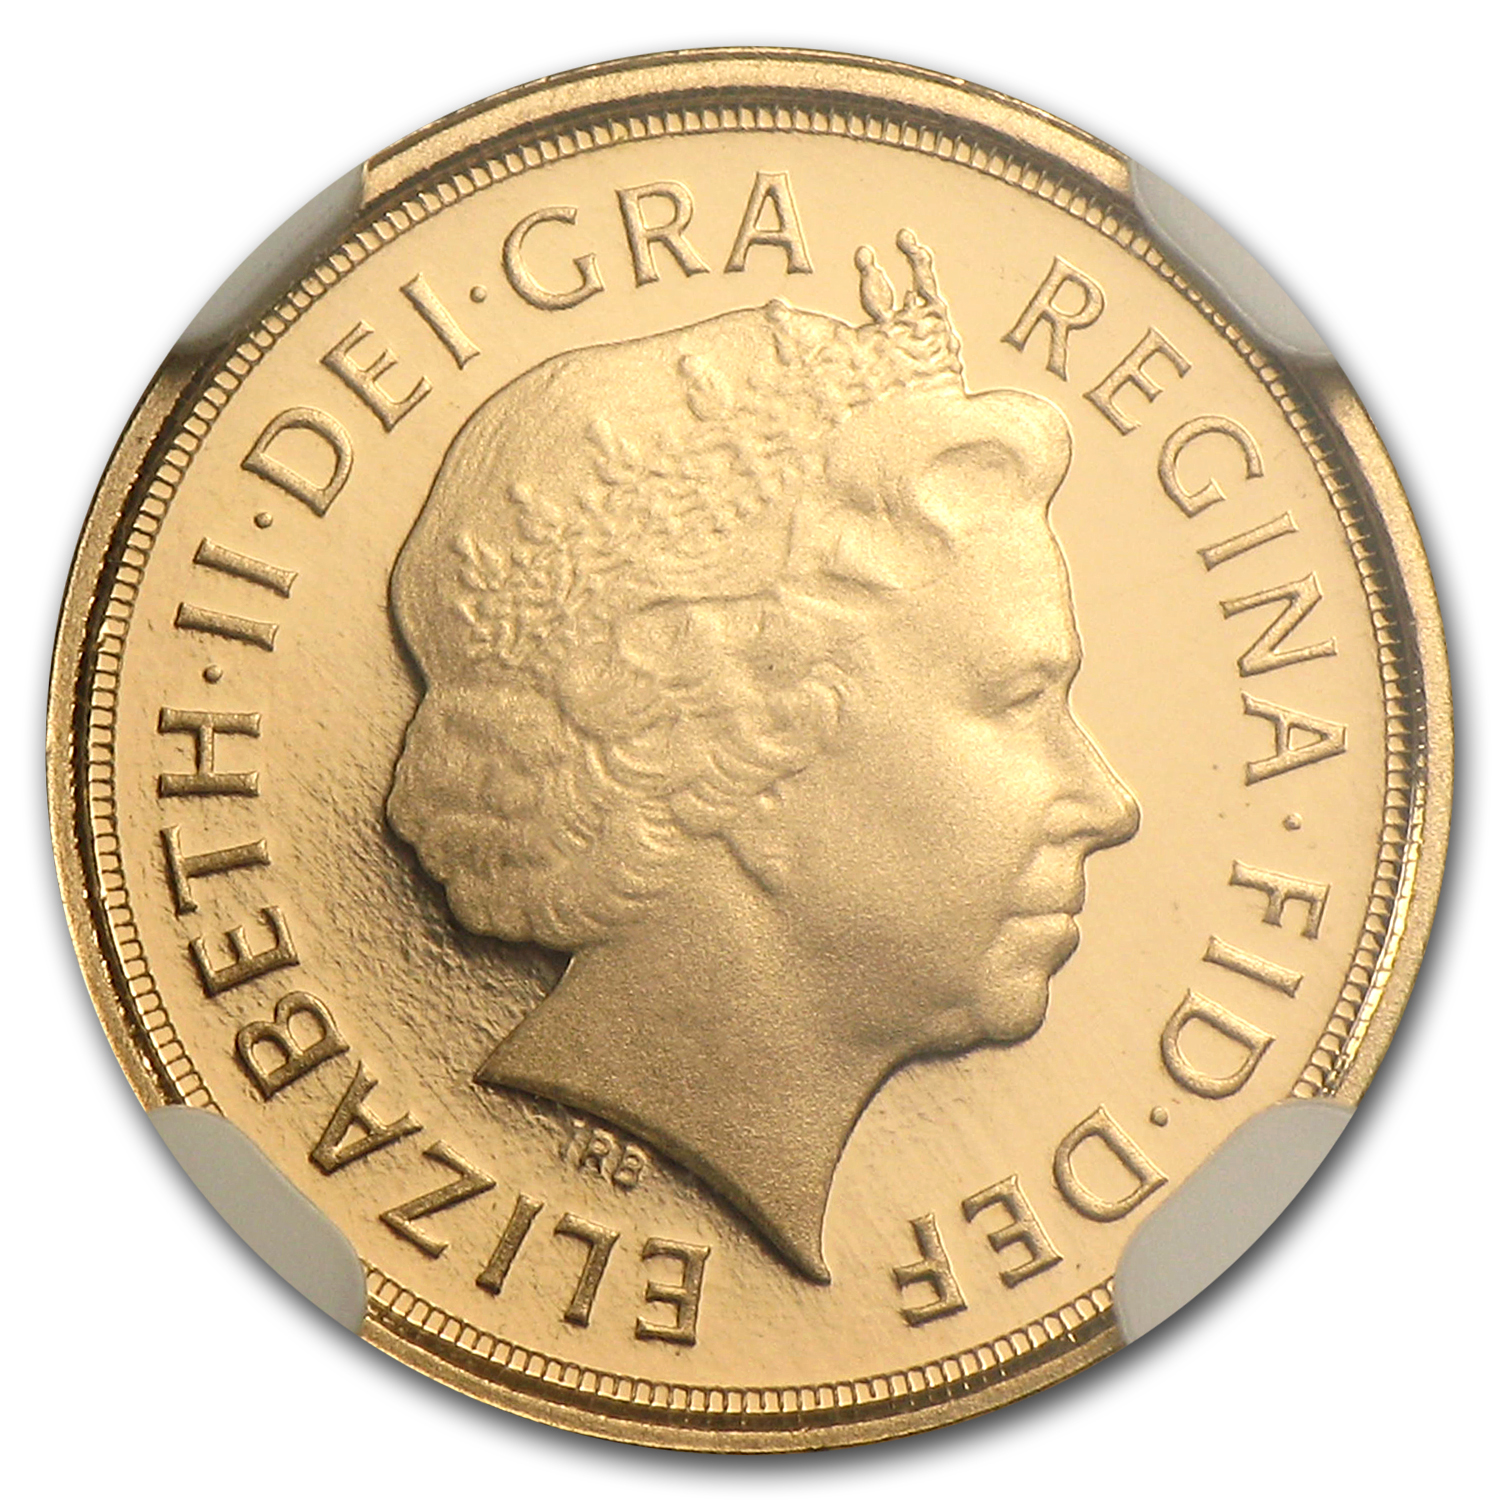 Great Britain 2011 Gold 1/4 Sovereign PR-70 UCAM NGC